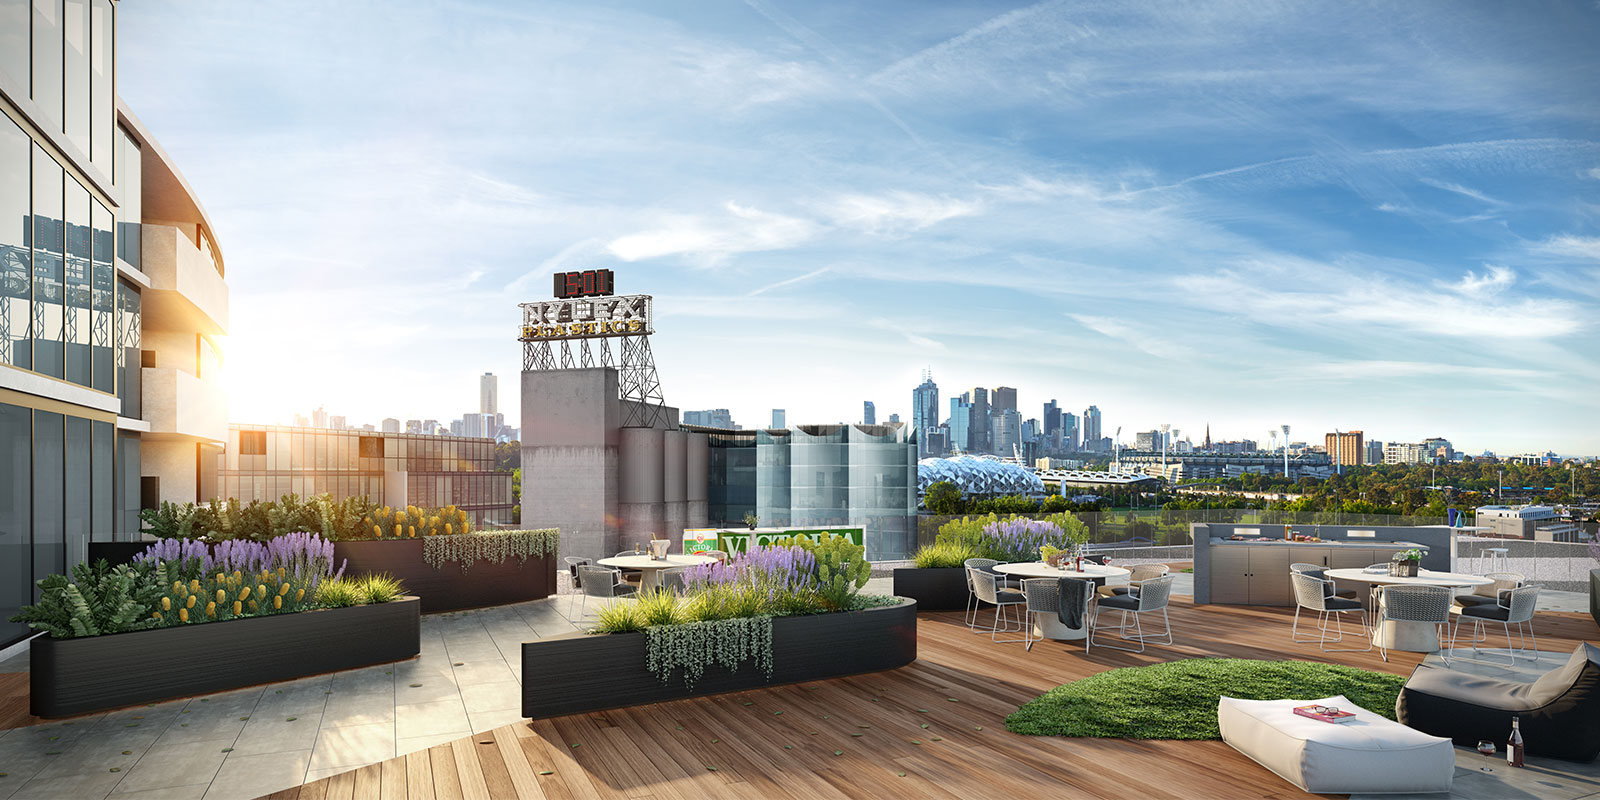 Malt District Coppins Corner Cremorne view from rooftop space